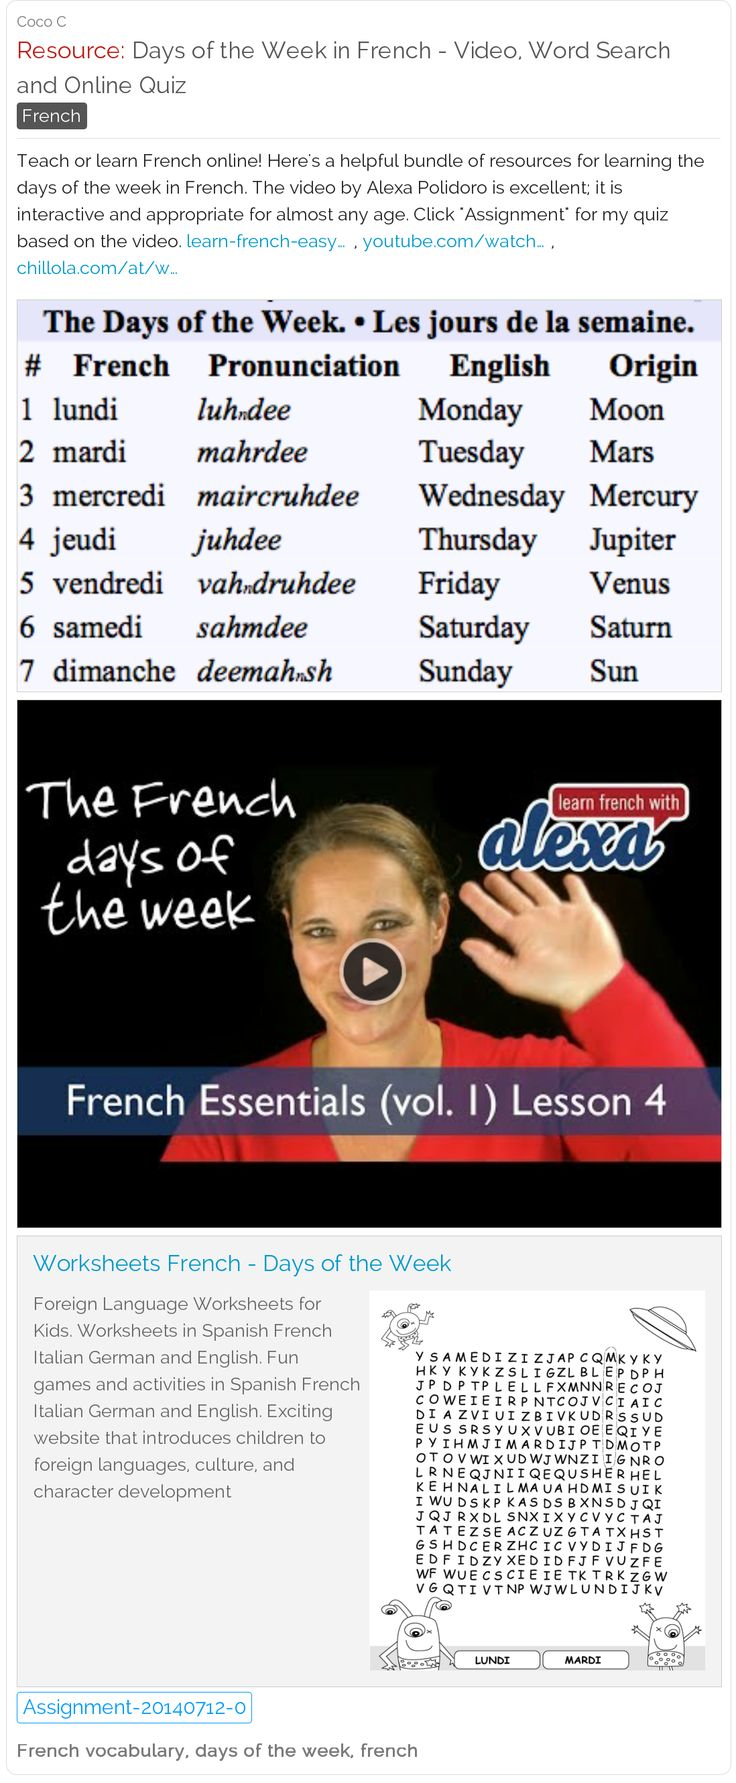 days of the week in french free video word search online quiz and word list schoolfy. Black Bedroom Furniture Sets. Home Design Ideas